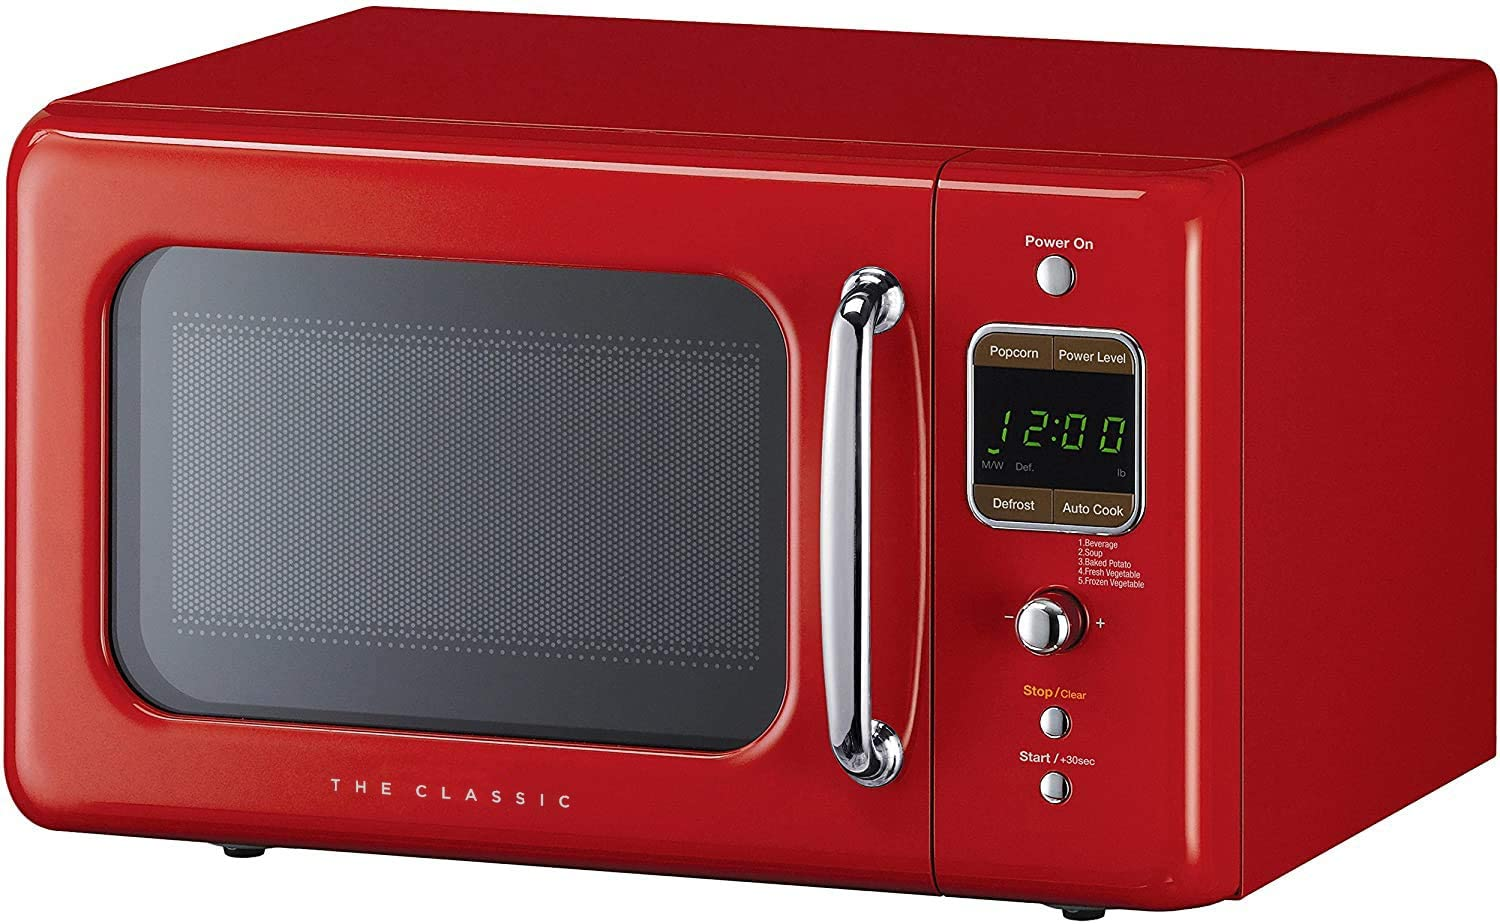 An image of a red microwave oven